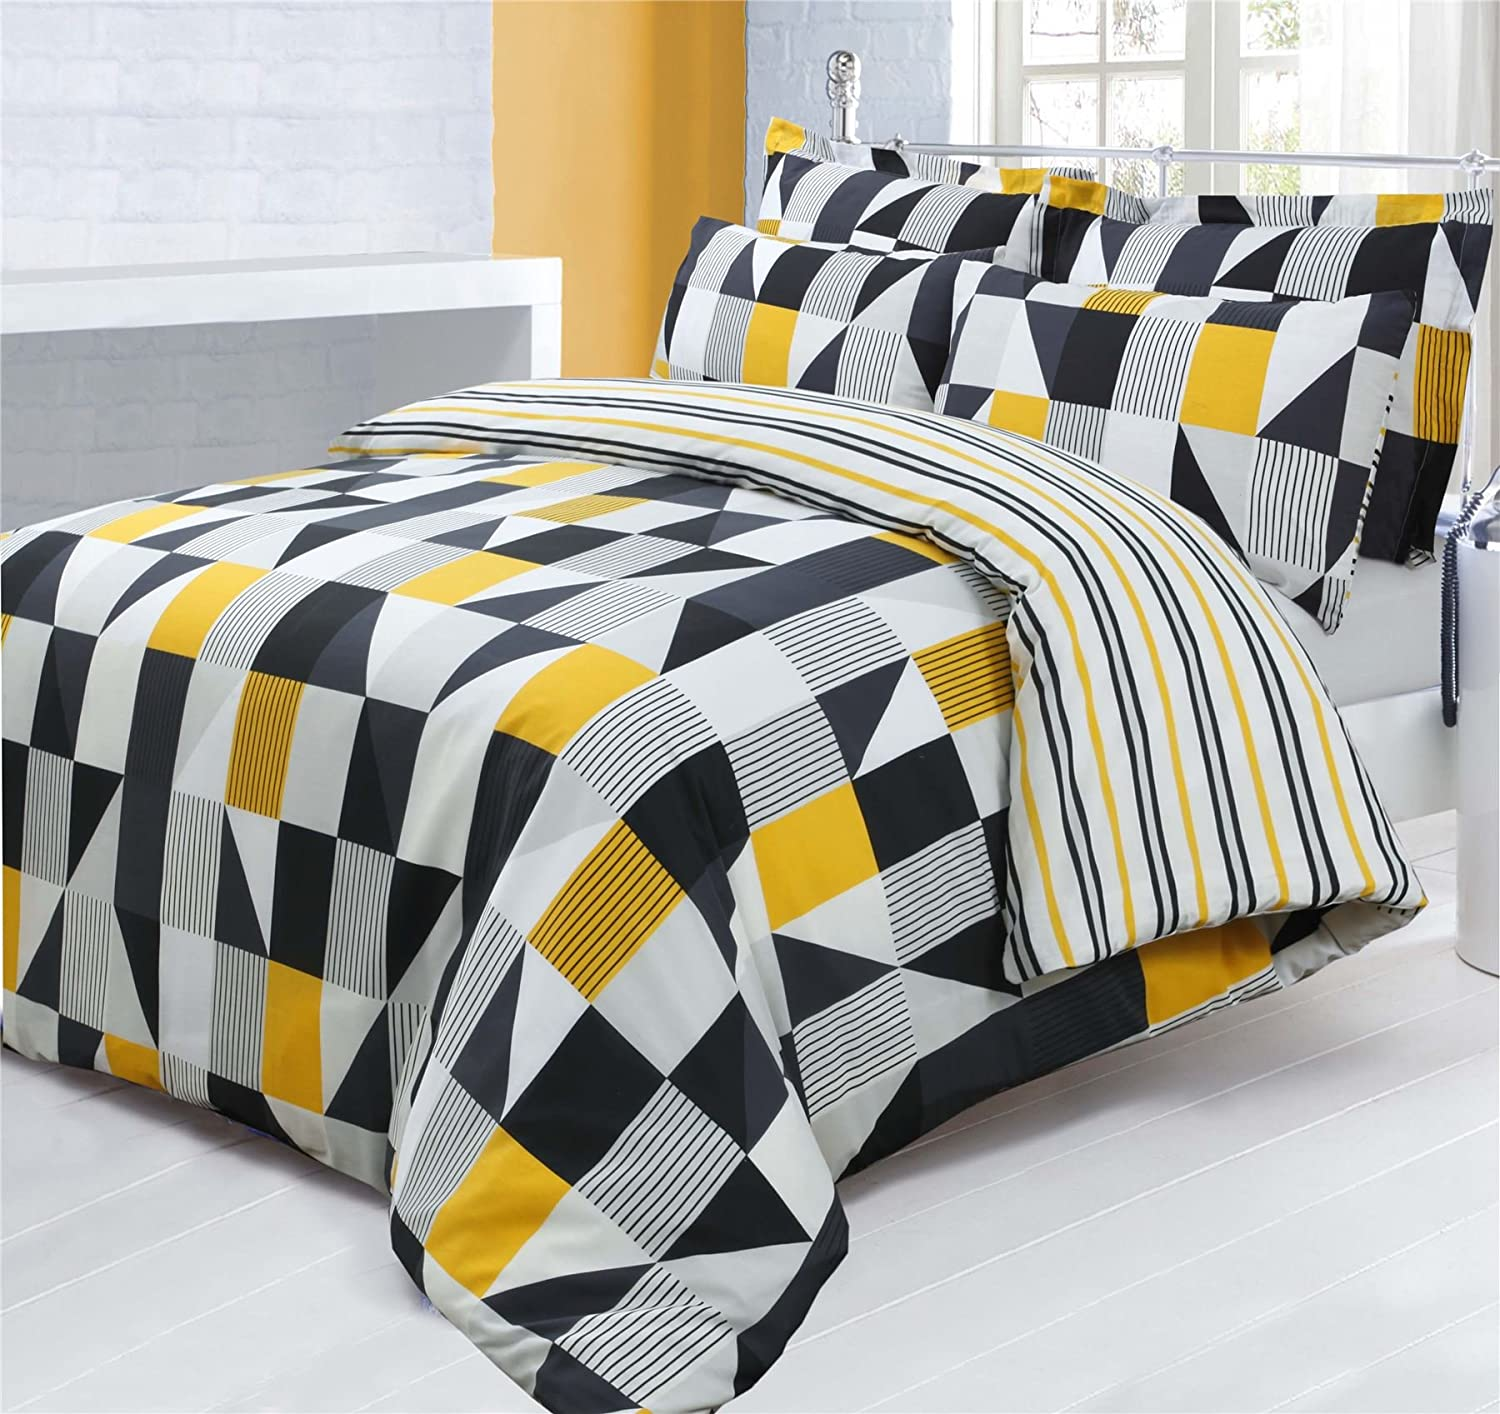 Yellow and Black Bedding – Ease Bedding with Style